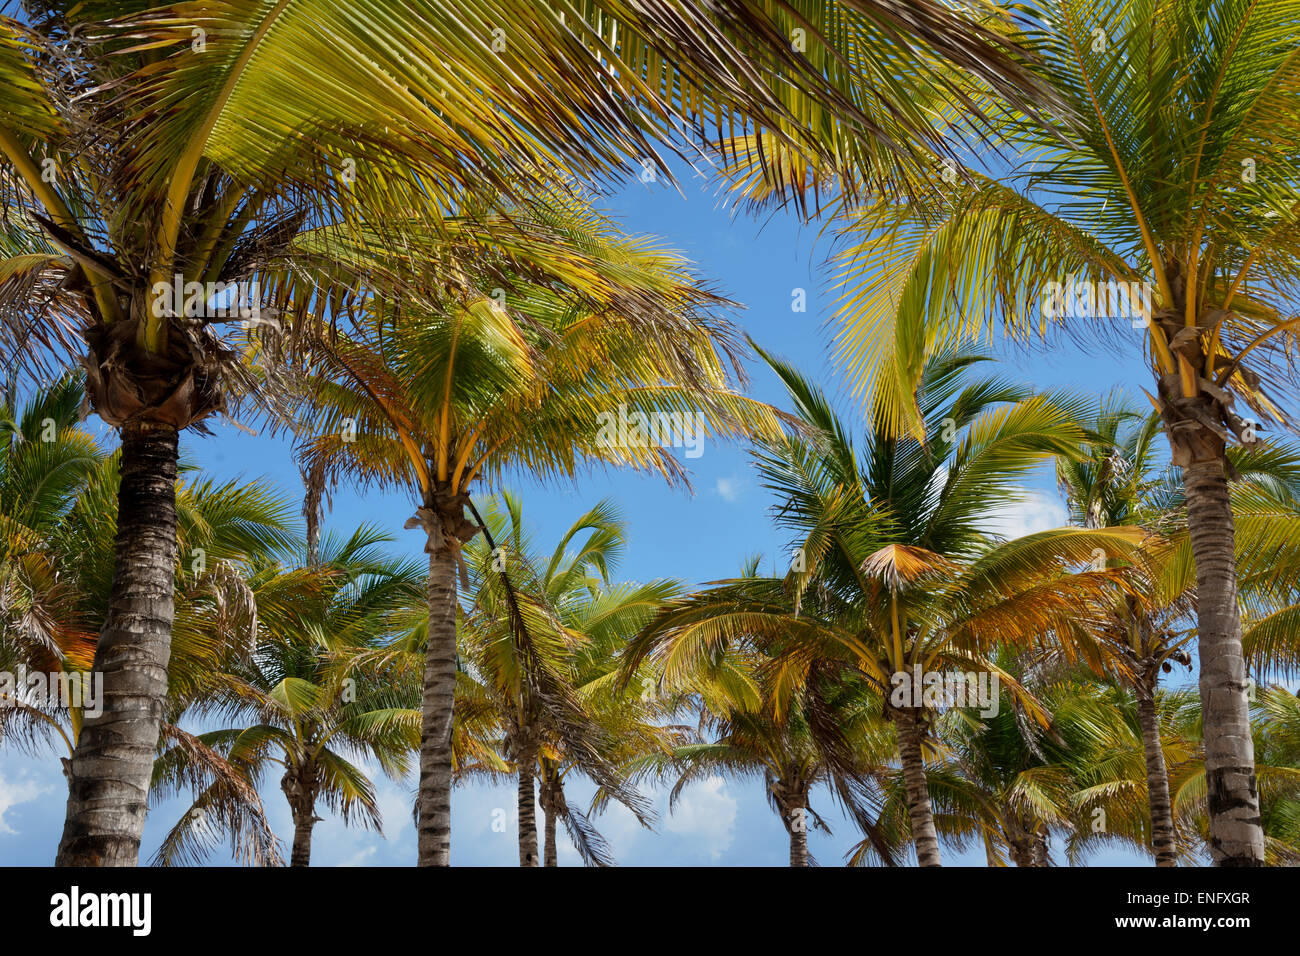 Palm trees on a tropical beach - Stock Image